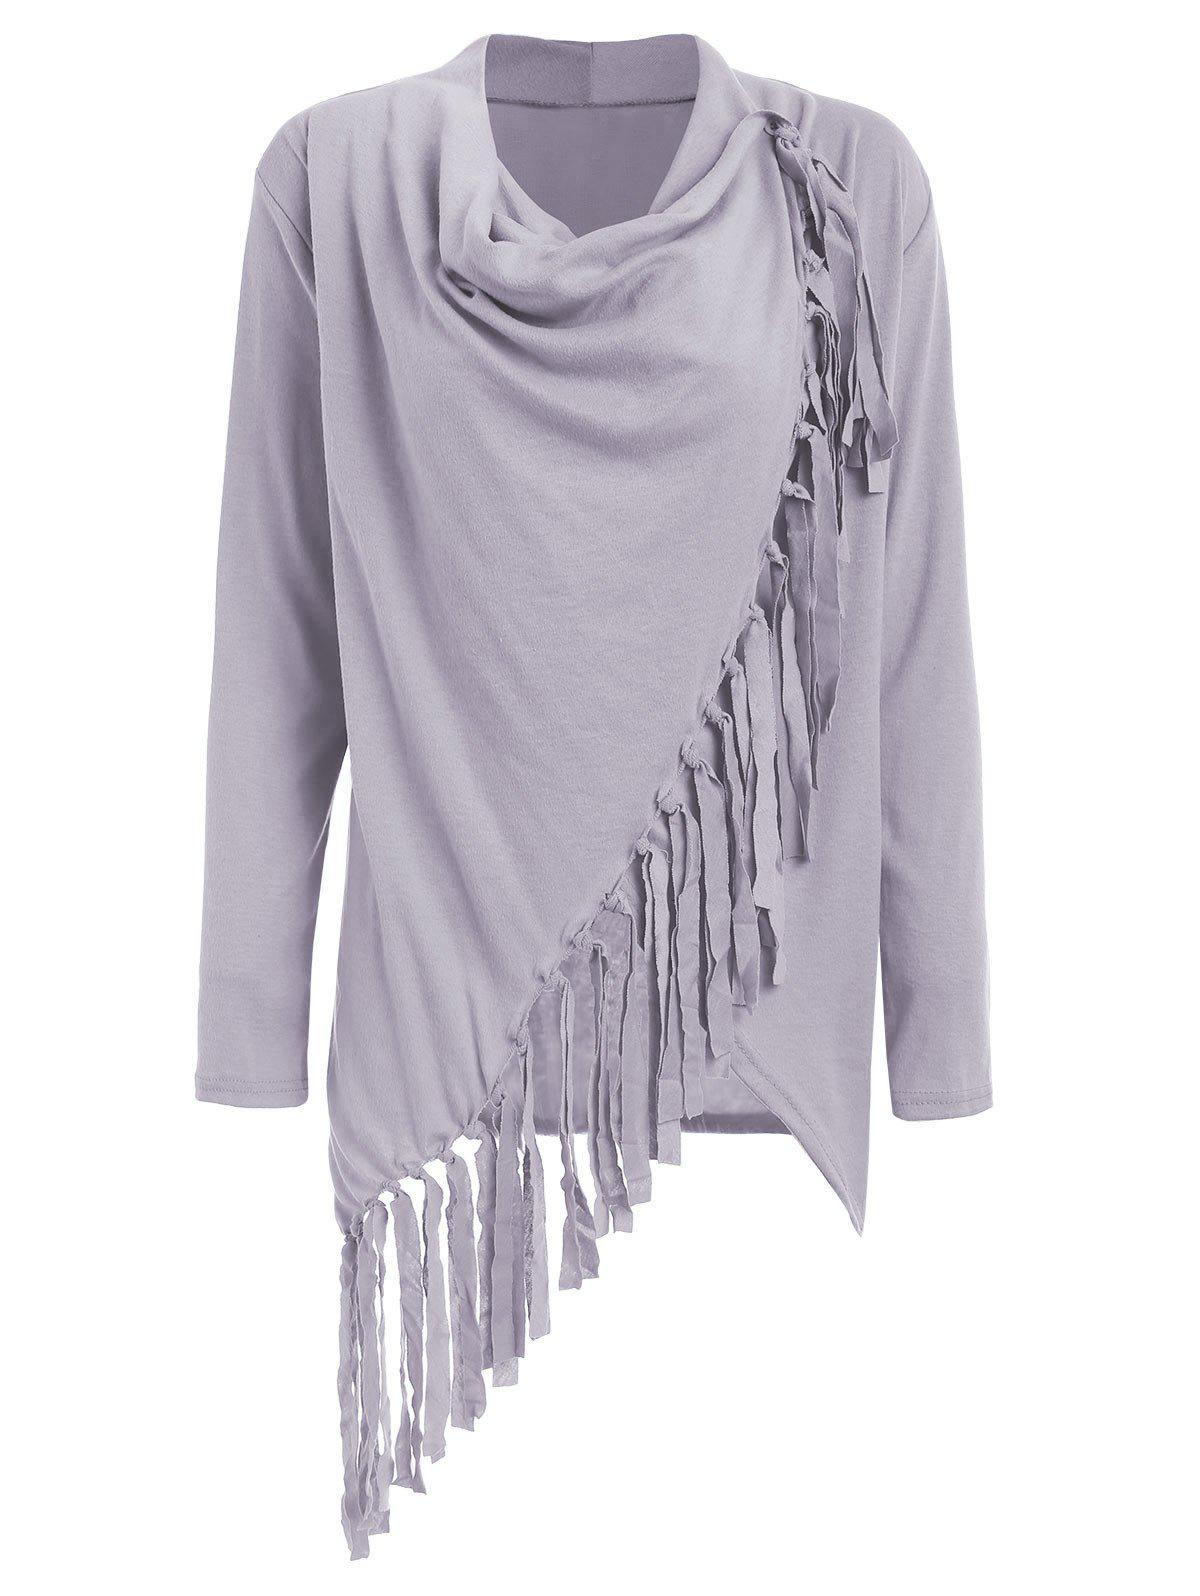 Asymmetric Long Sleeve Tassel Top - GRAY M